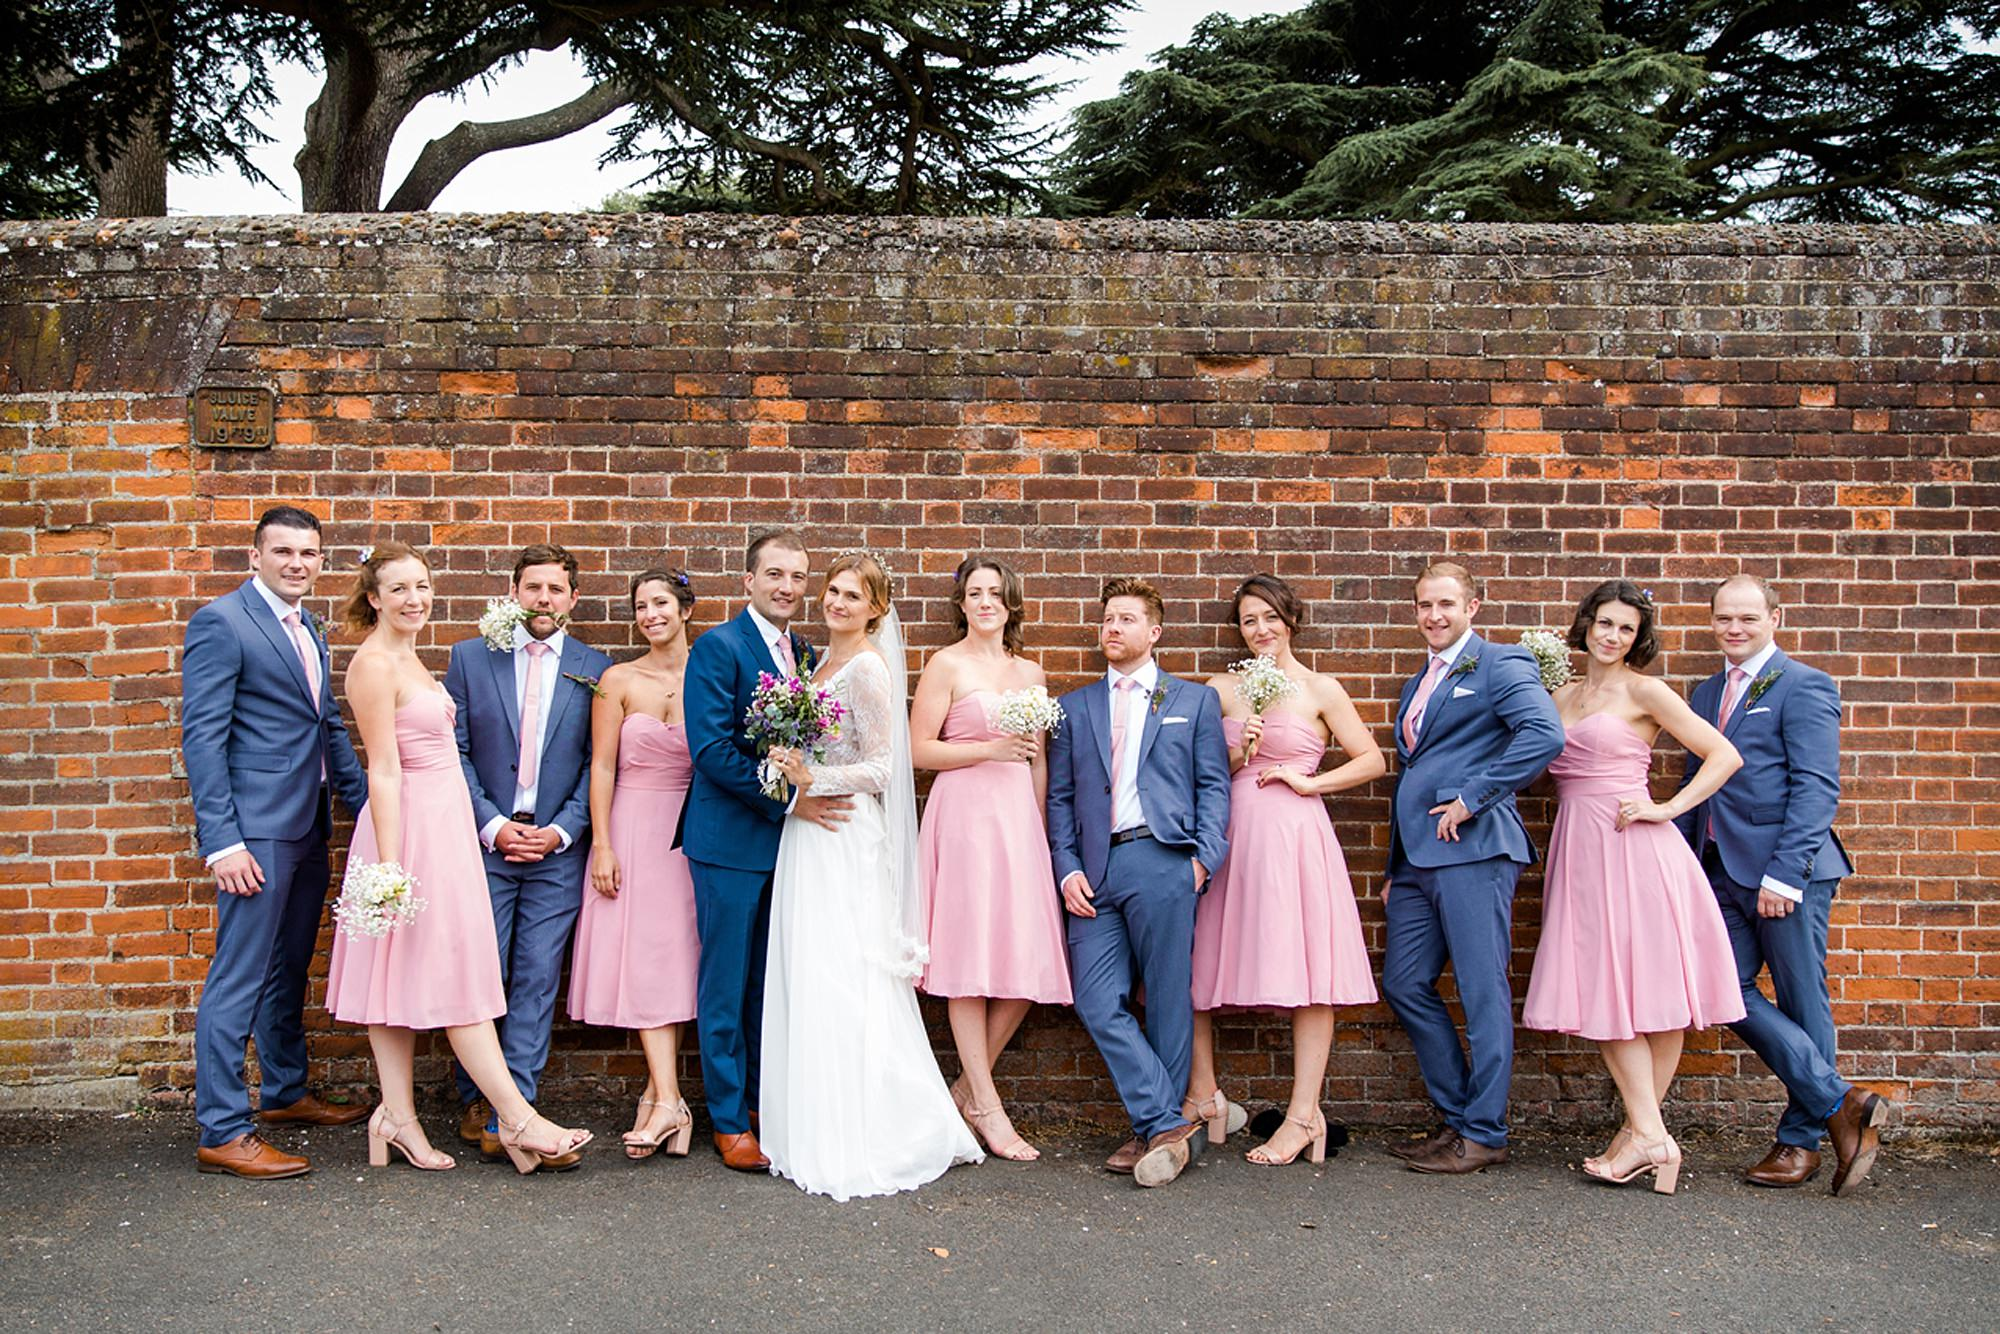 Marks Hall Estate wedding photography portrait of bridal party by wall